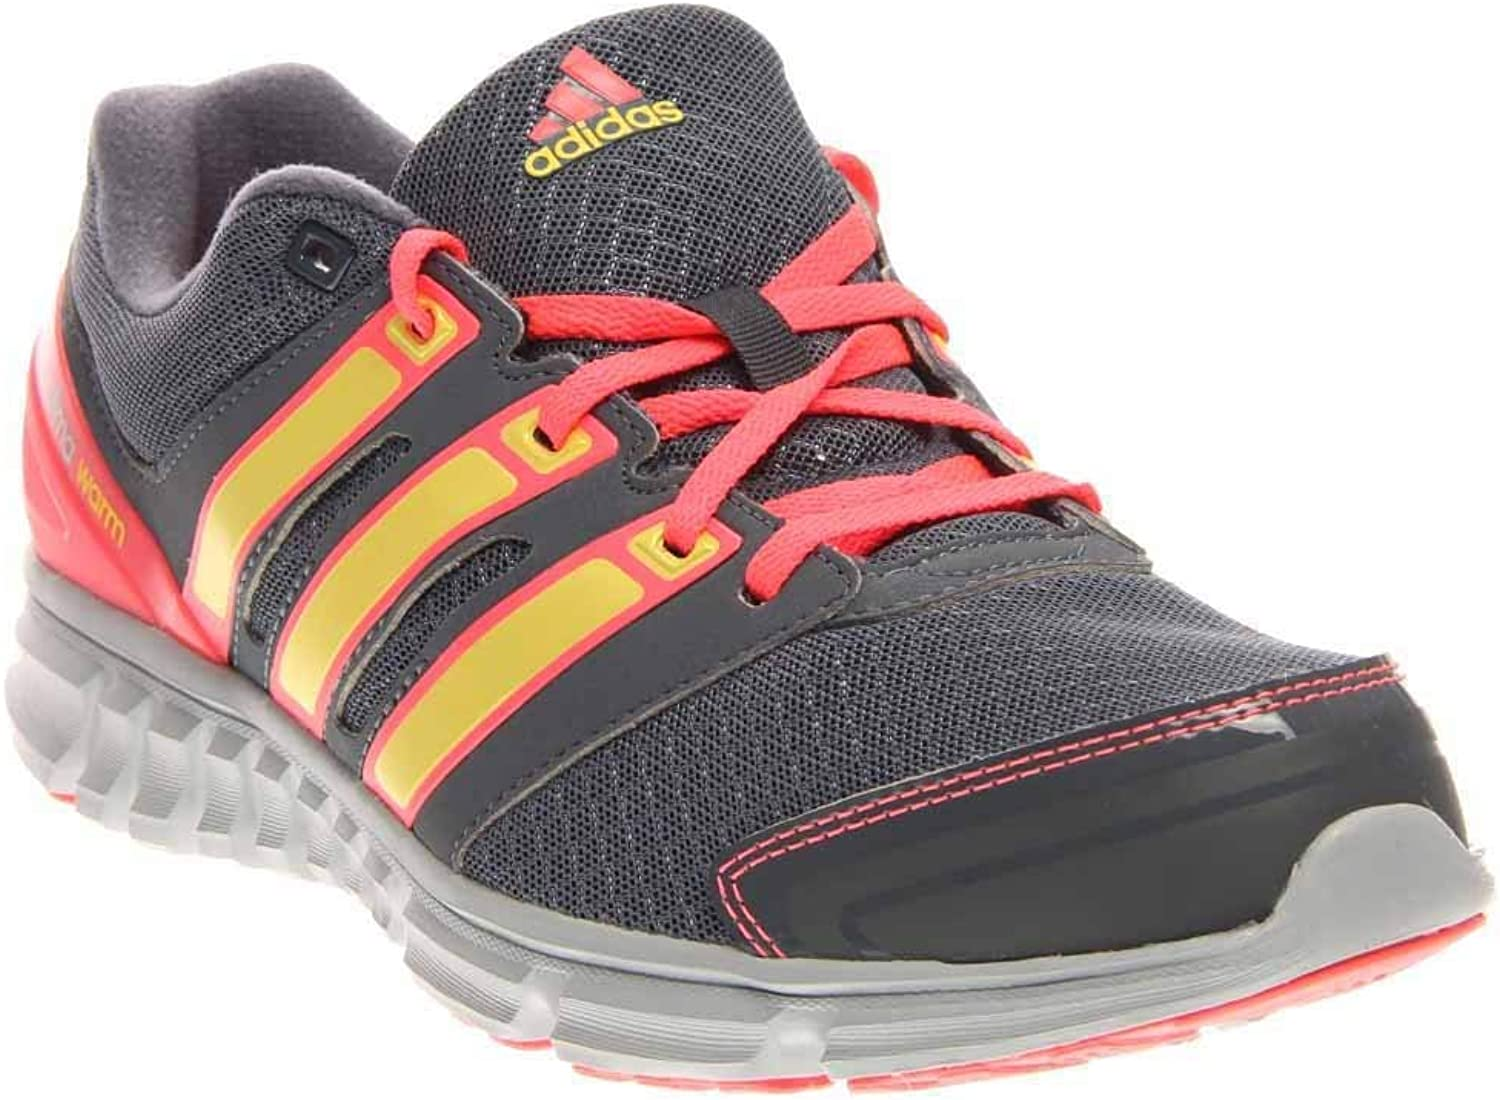 Adidas Climawarm Falcon PDX Women's Running shoes